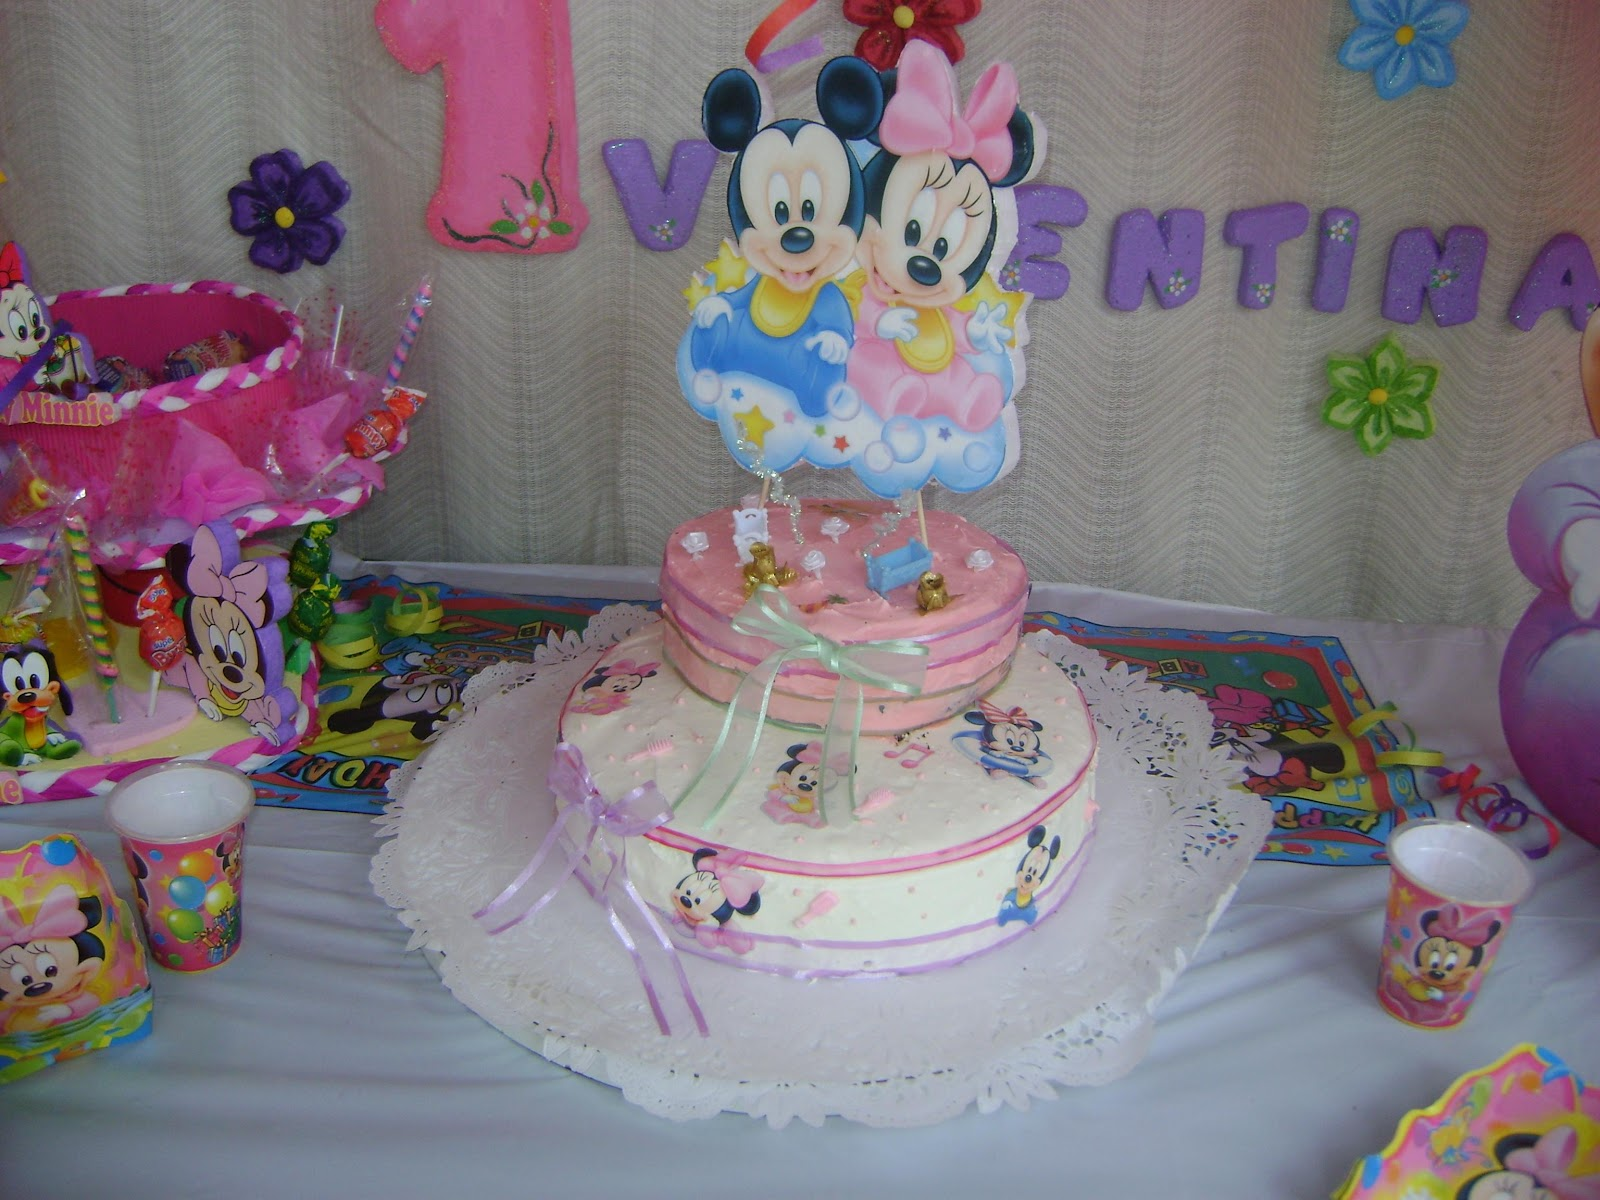 Decoraciones y manualidades yoryvan minnie baby decoraci n - Manualidades faciles decoracion ...